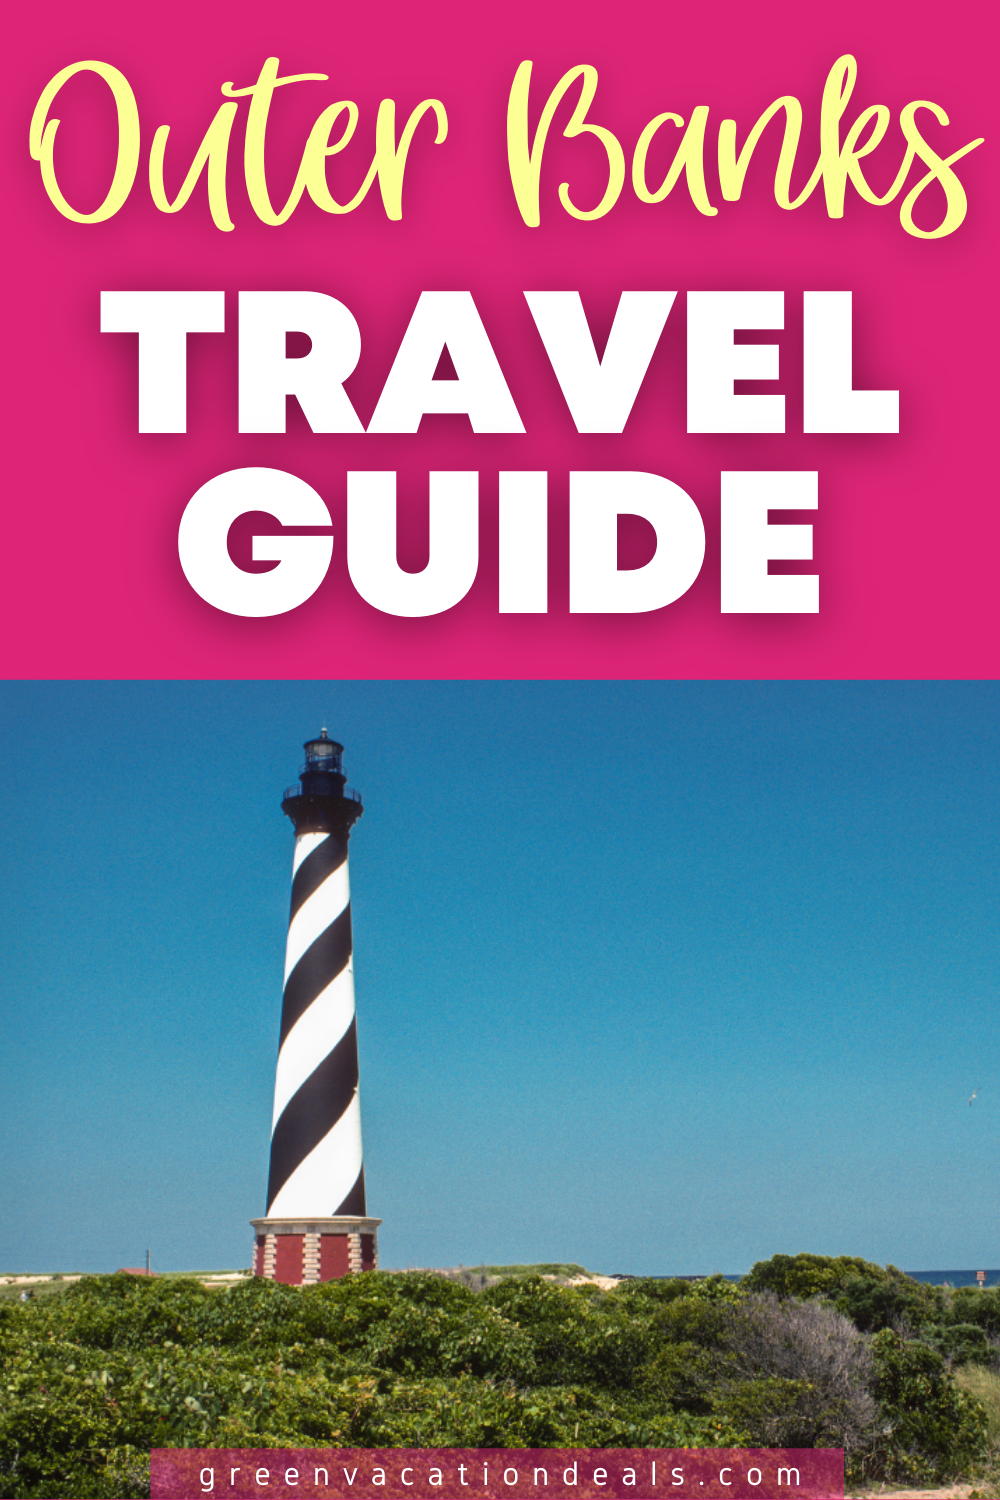 Outer Banks, North Carolina travel guide: fun activities (ghost tour, kayaking, etc), plus see how to save up to 67% off hotels in Kill Devils Hill, Hatteras, Kitty Hawk, etc. Excellent travel advice for this USA beach destination. #OuterBanks #NorthCarolina #NC #Carolina #CapeHatteras #OBX #traveldeals #travelsale #hoteldeals #hotelsale #travelhacks #KillDevilHills #KittyHawk #NagsHead #fish #kayaking